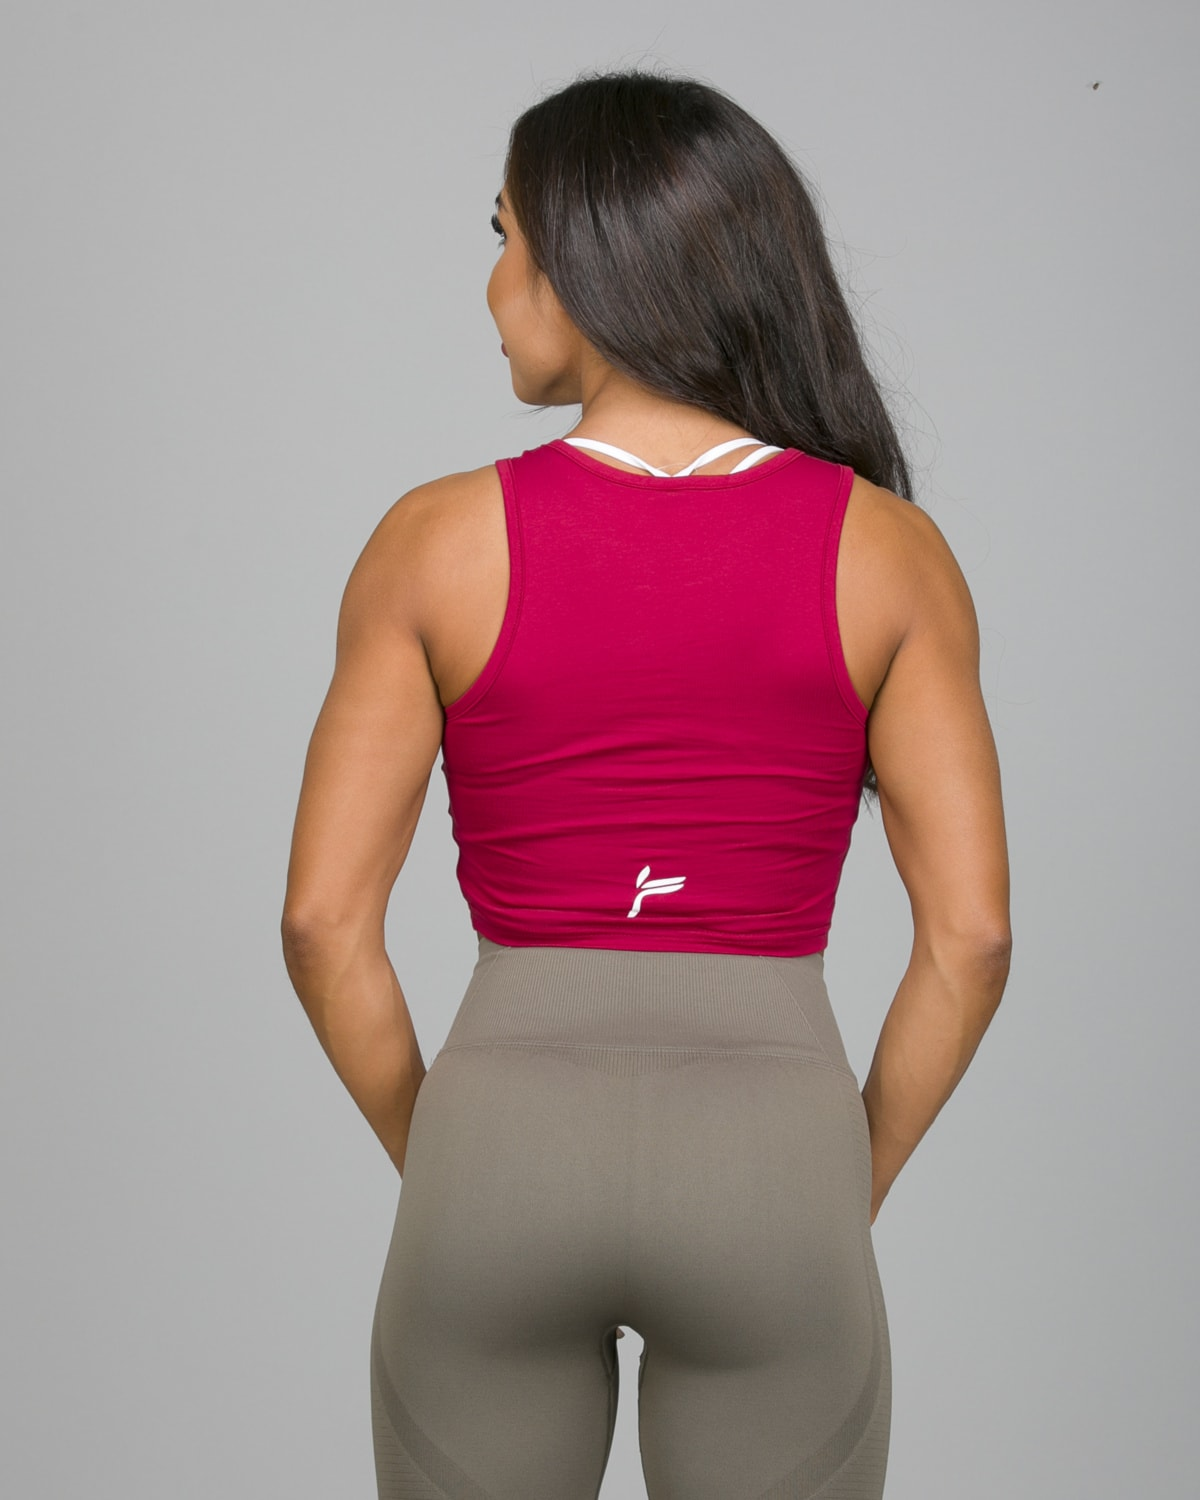 Famme Pure Crop Top Dark Red PCT-DR e